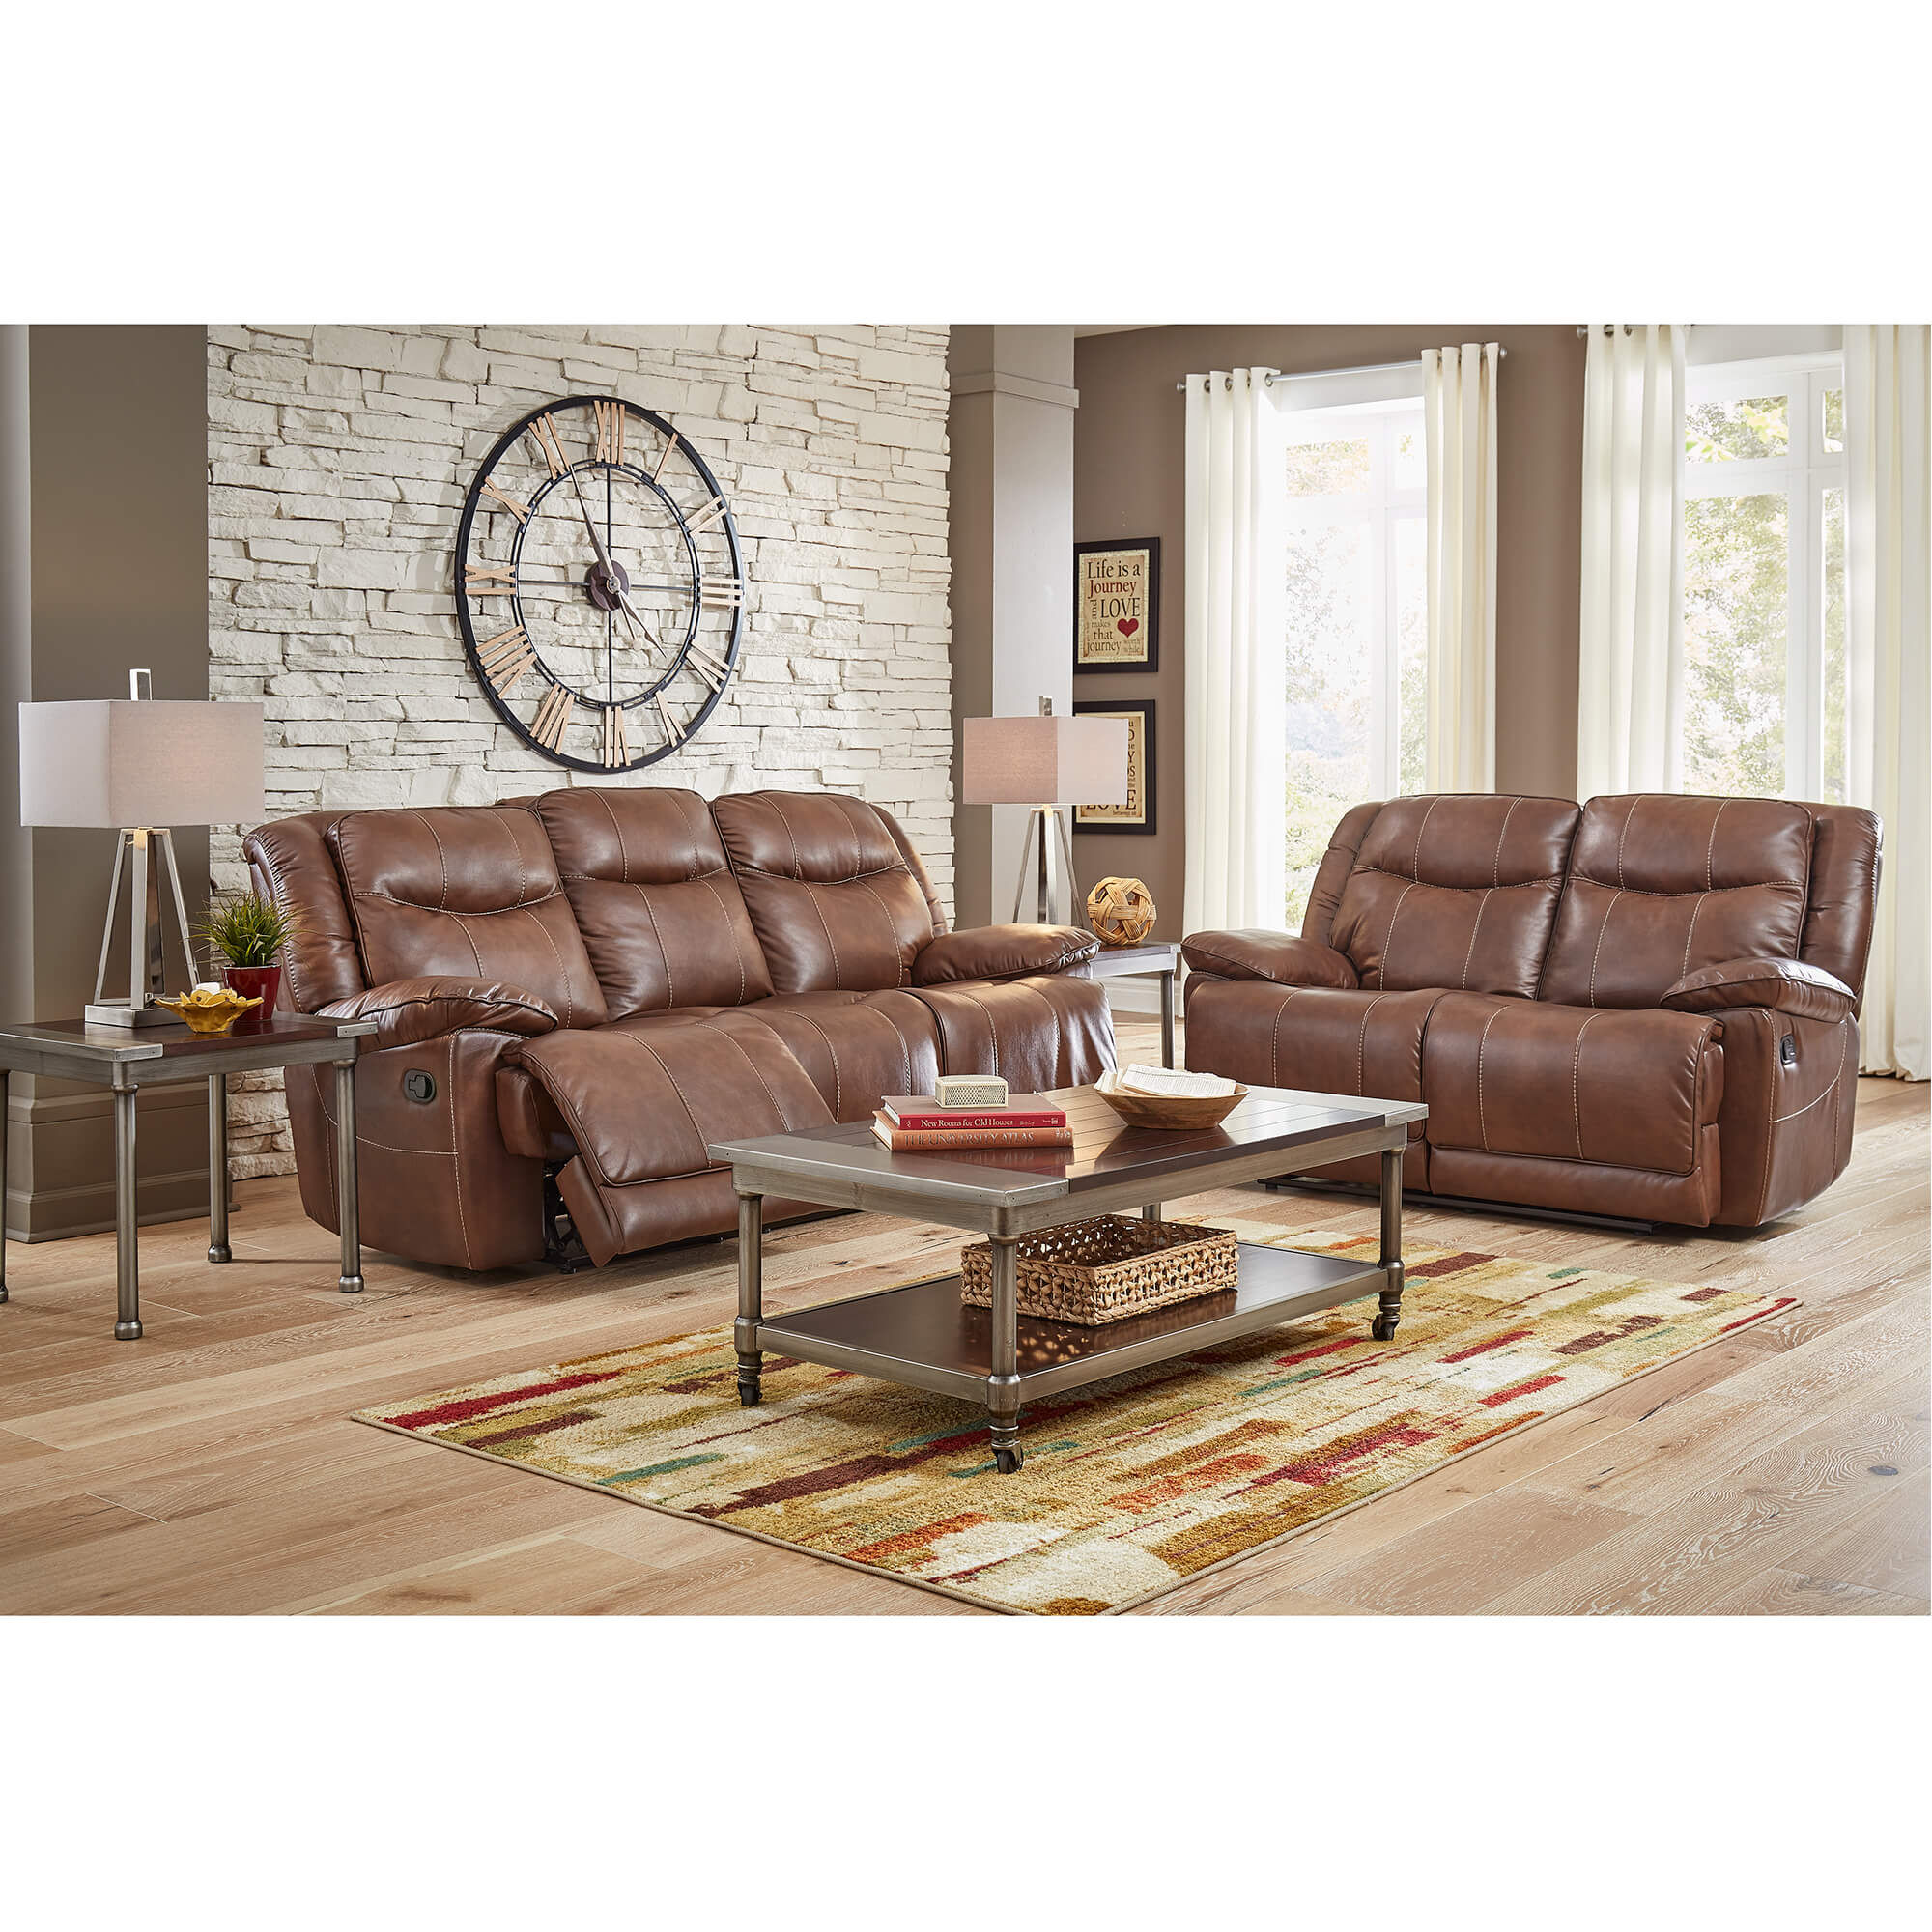 Delicieux 2 Piece Barron Reclining Living Room Collection